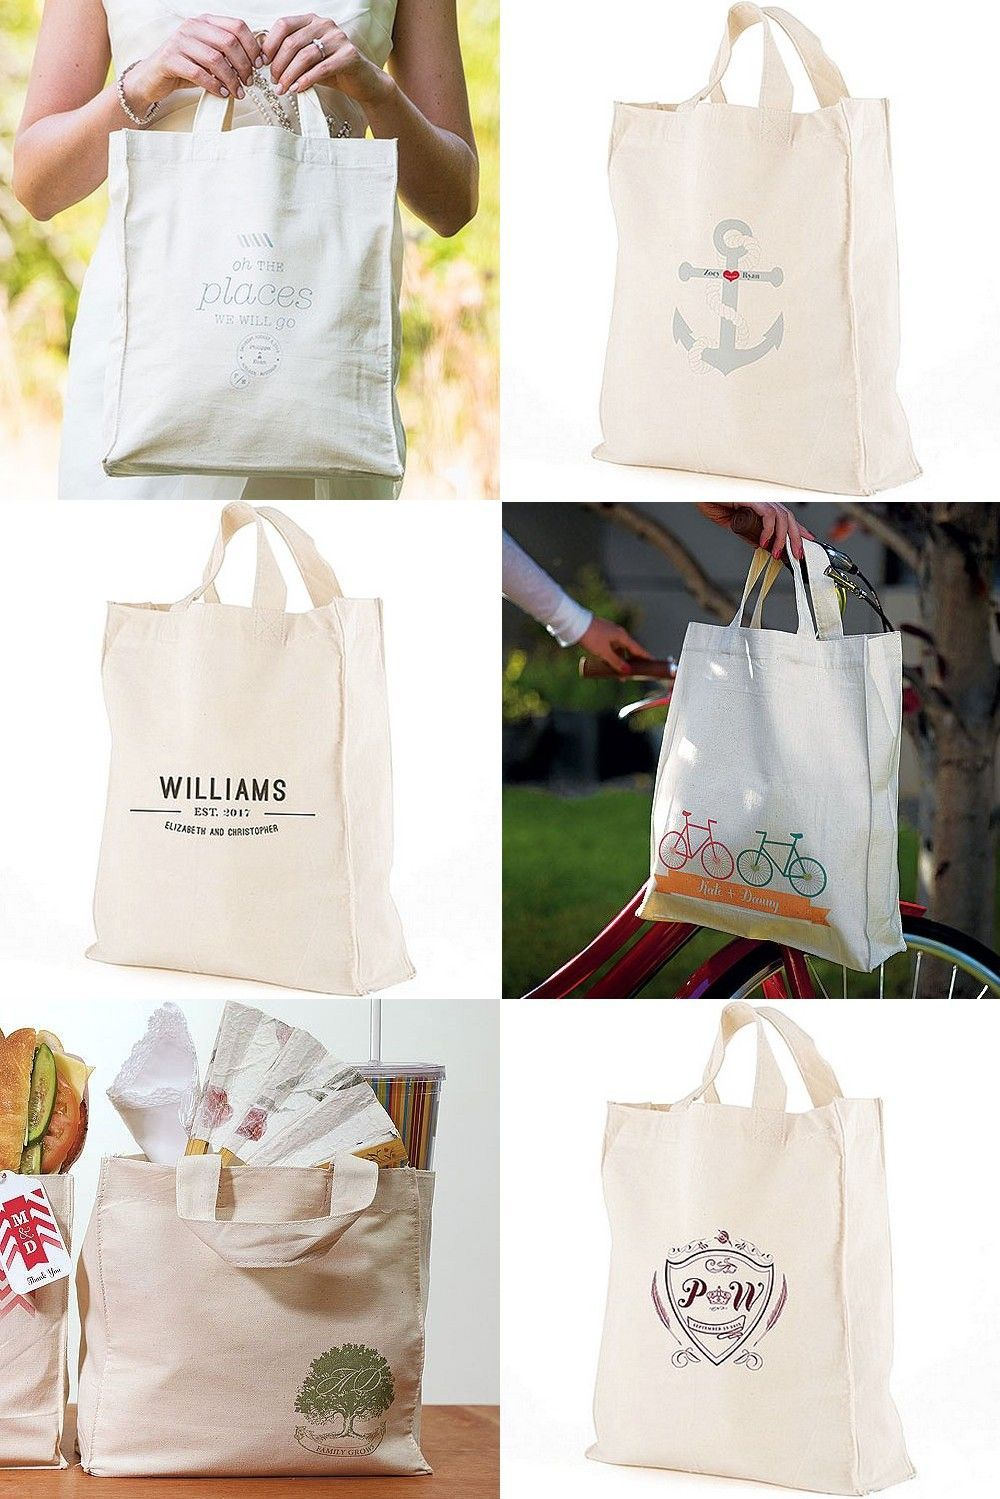 Beach wedding gift bags  Personalized Reusable Canvas Tote Wedding Gift Bags  Cotton canvas